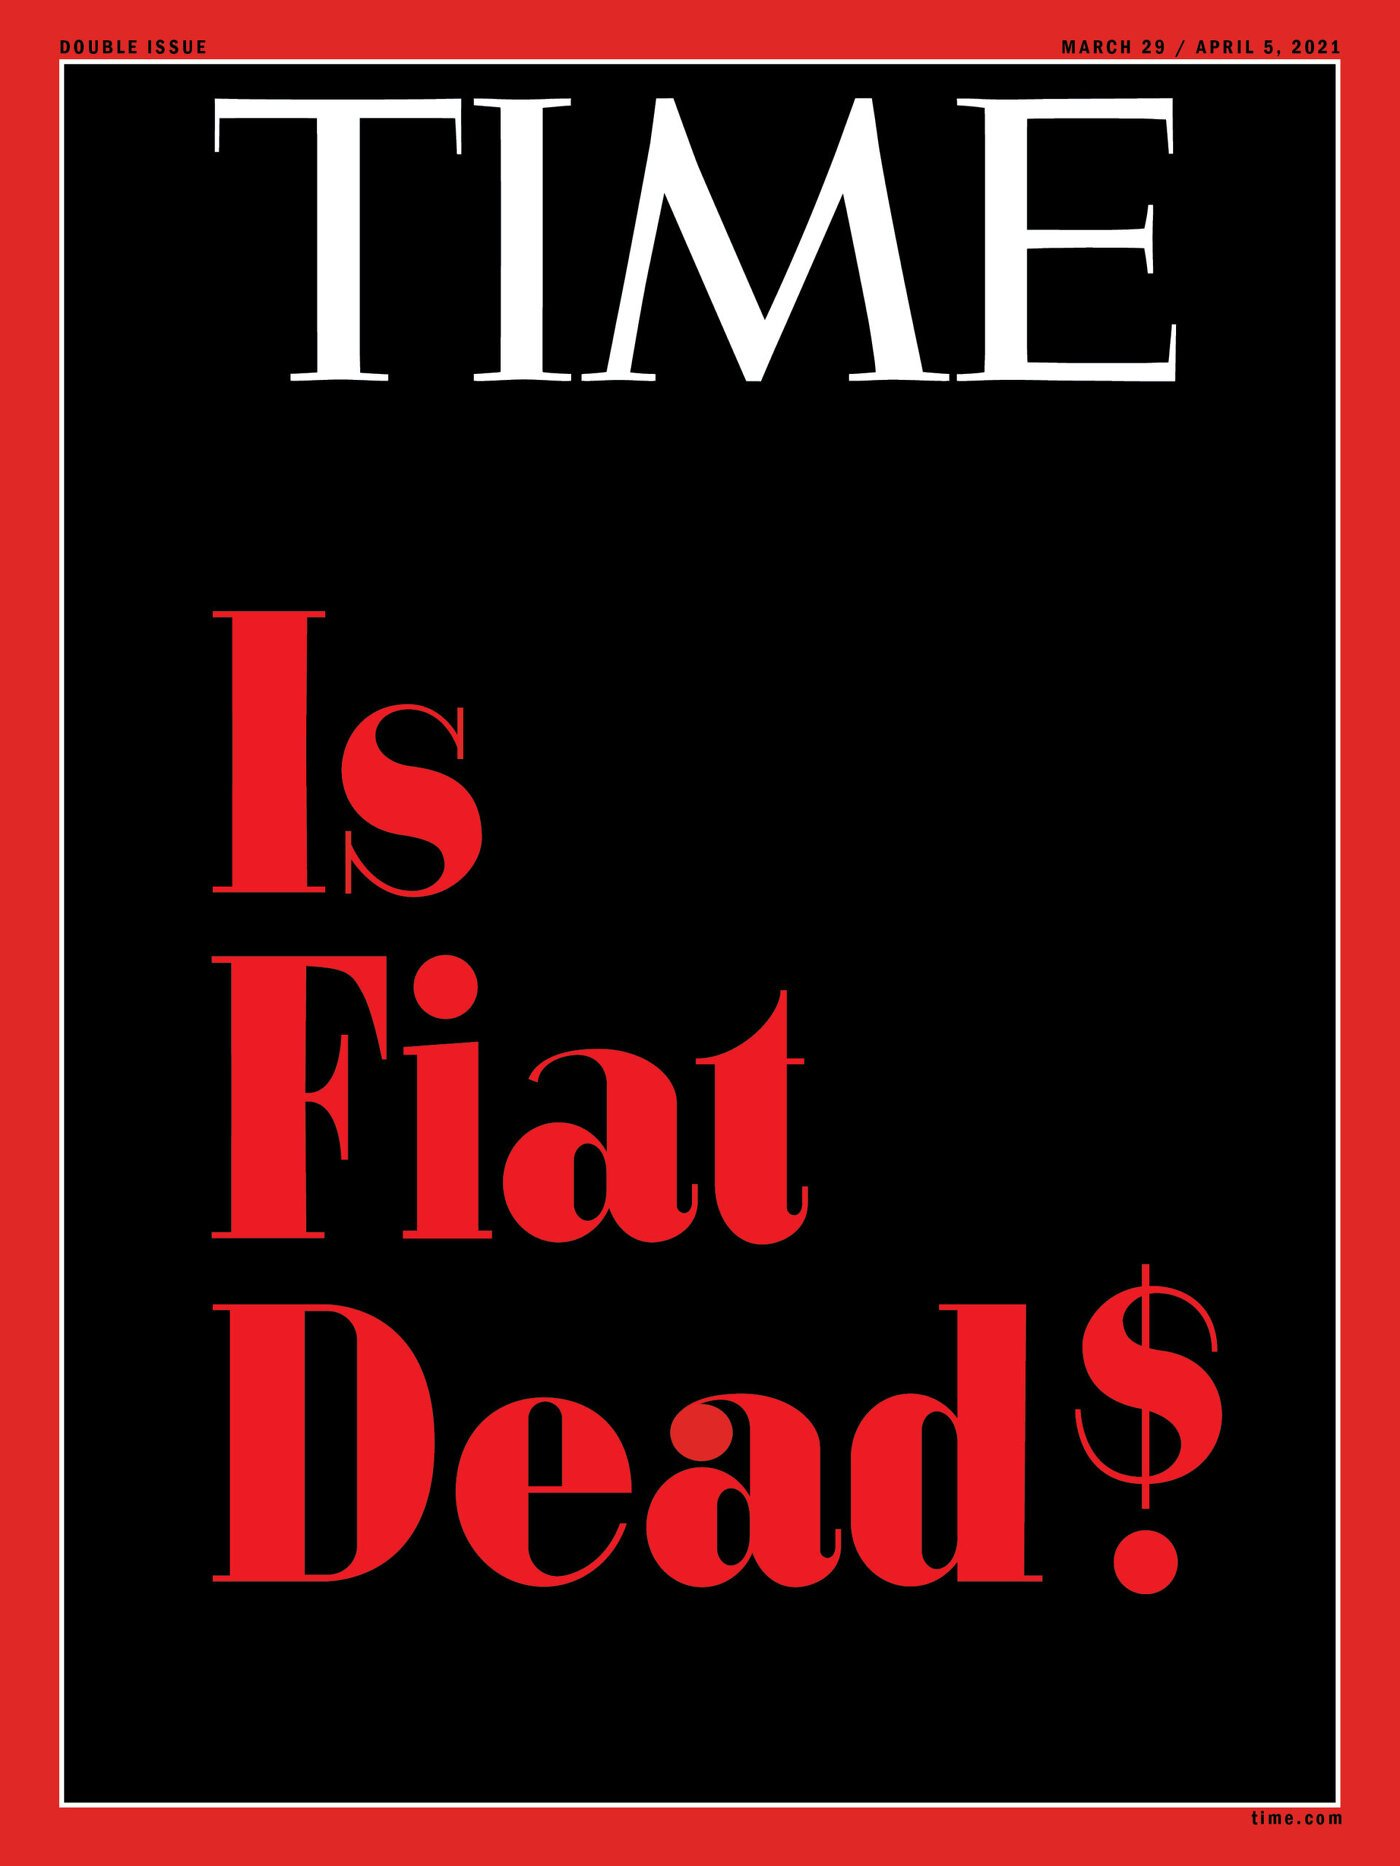 TIME Magazine sells an NFT for $130,000